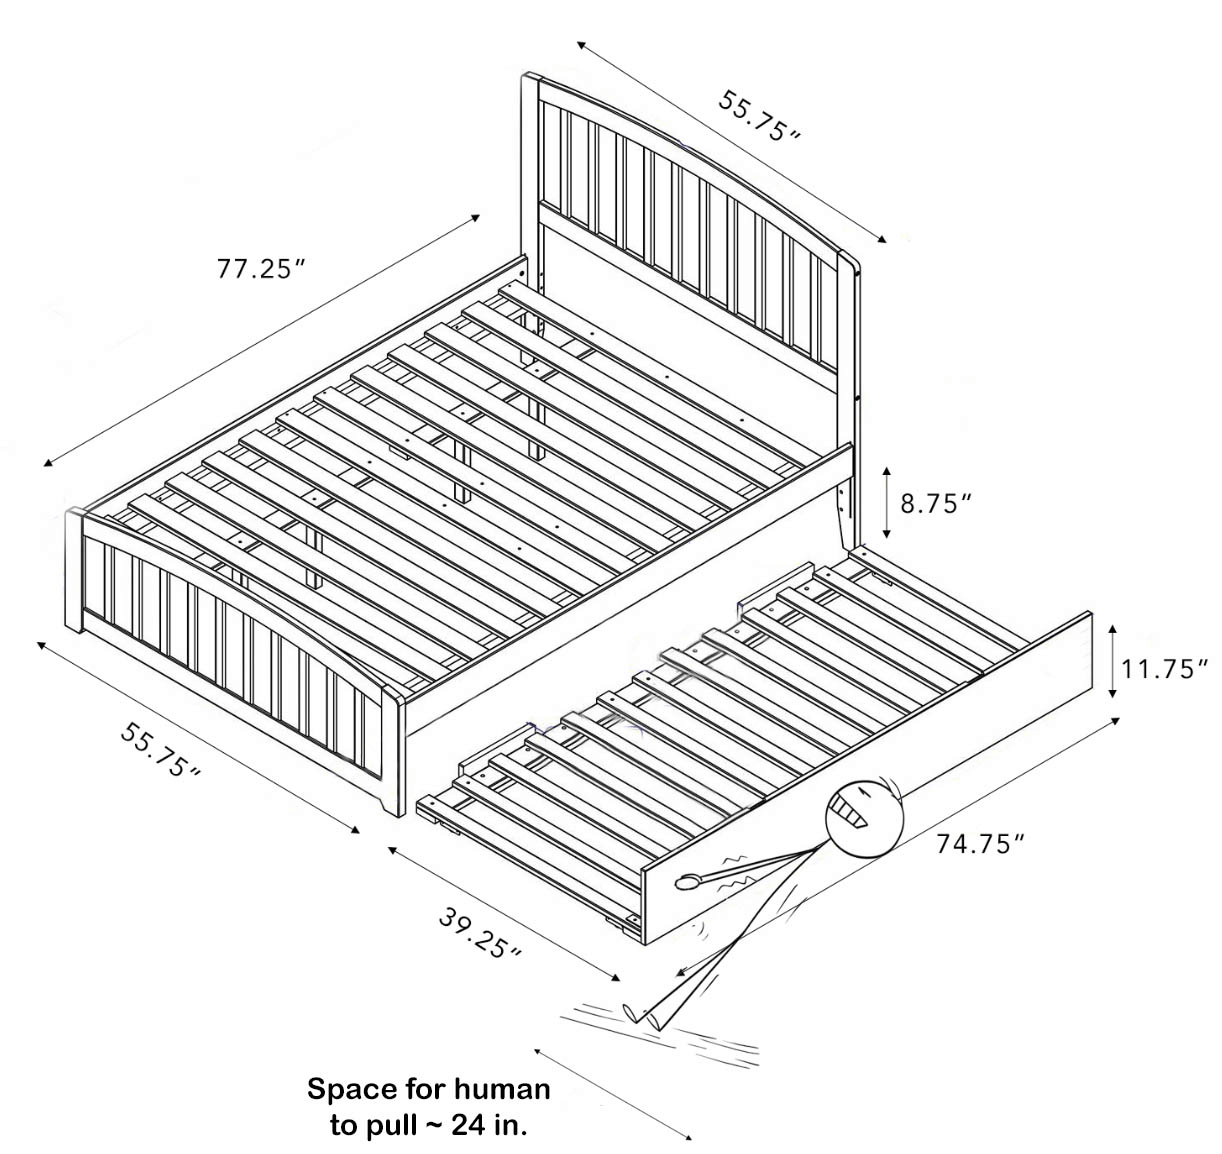 Trundle bed floor space includes the parent bed, trundle bed, and space for a walkway